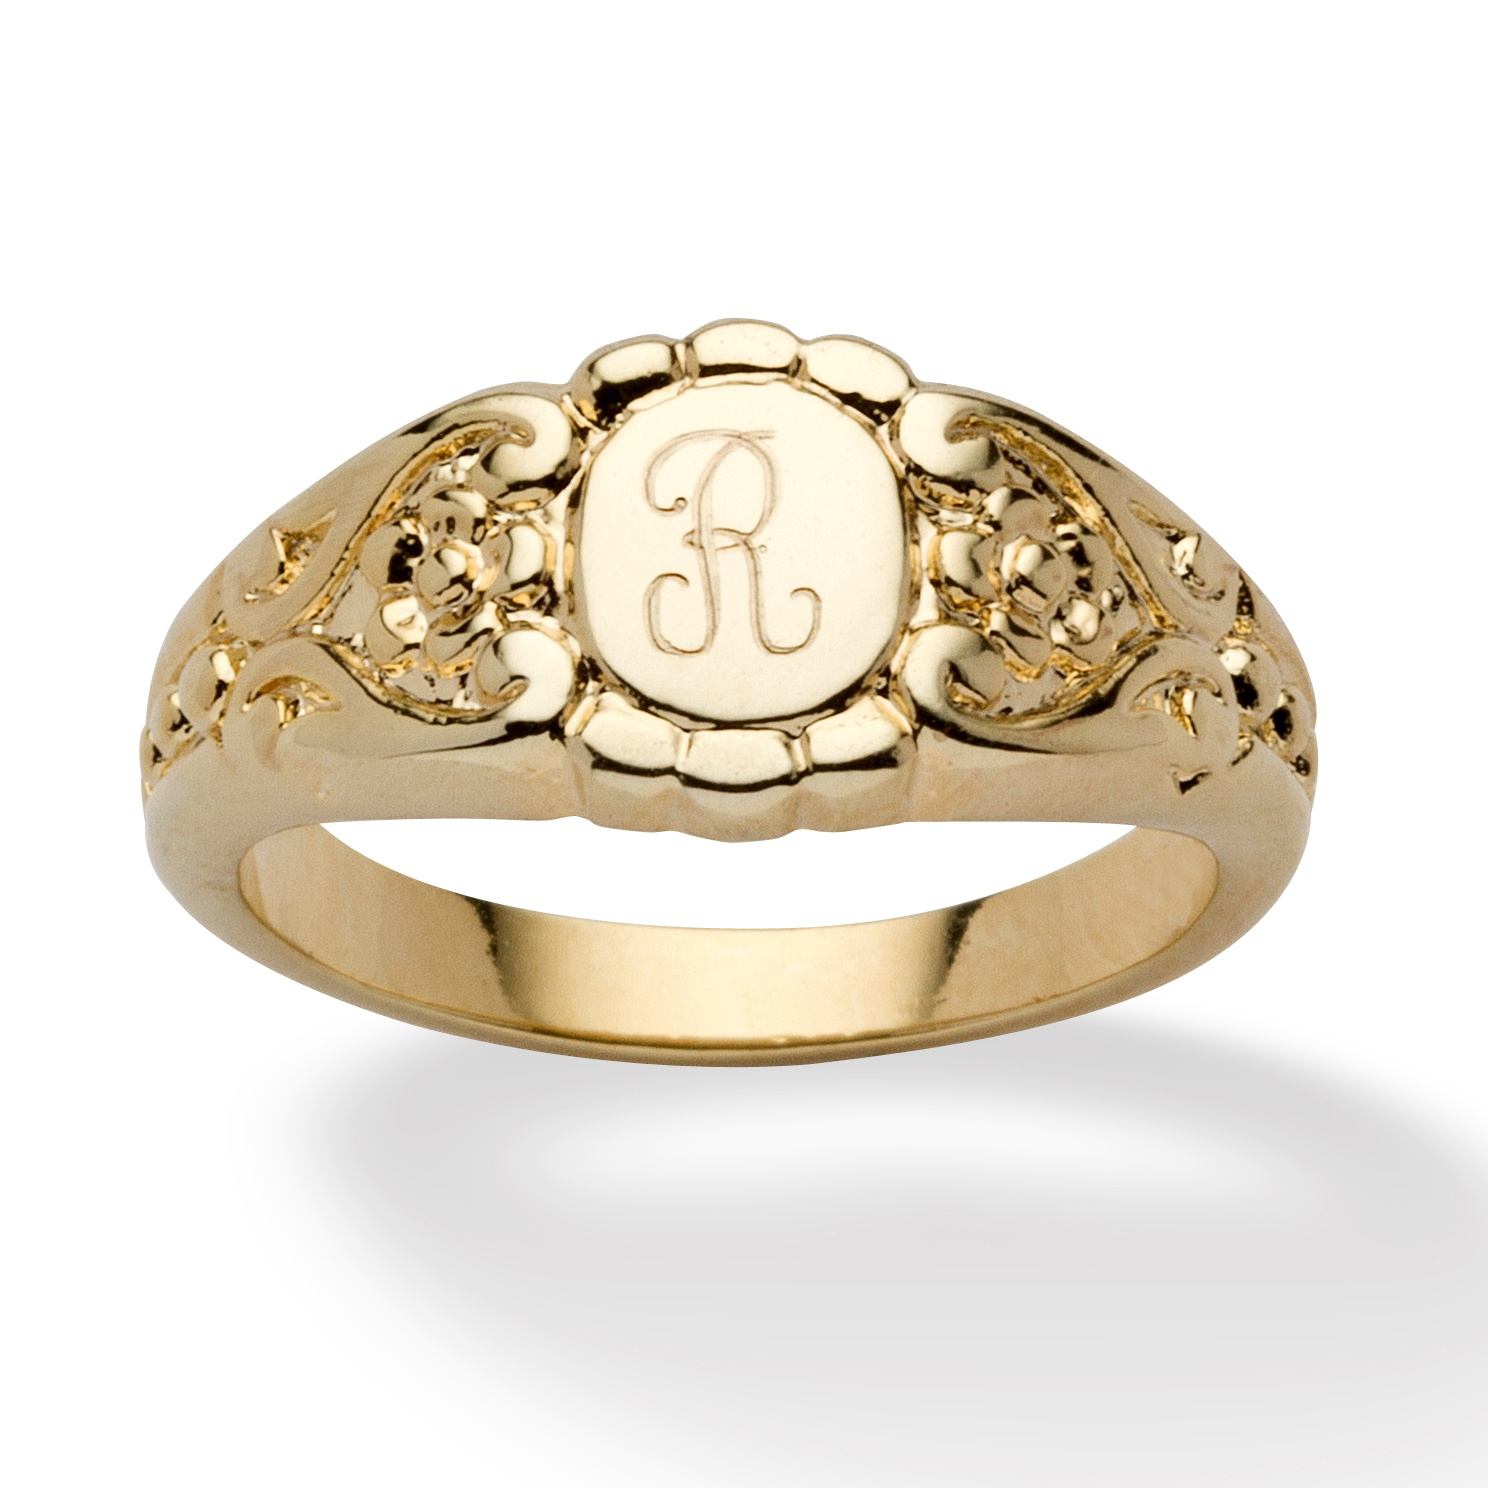 Personalized Signet Ring In 14k Gold Plated At PalmBeach